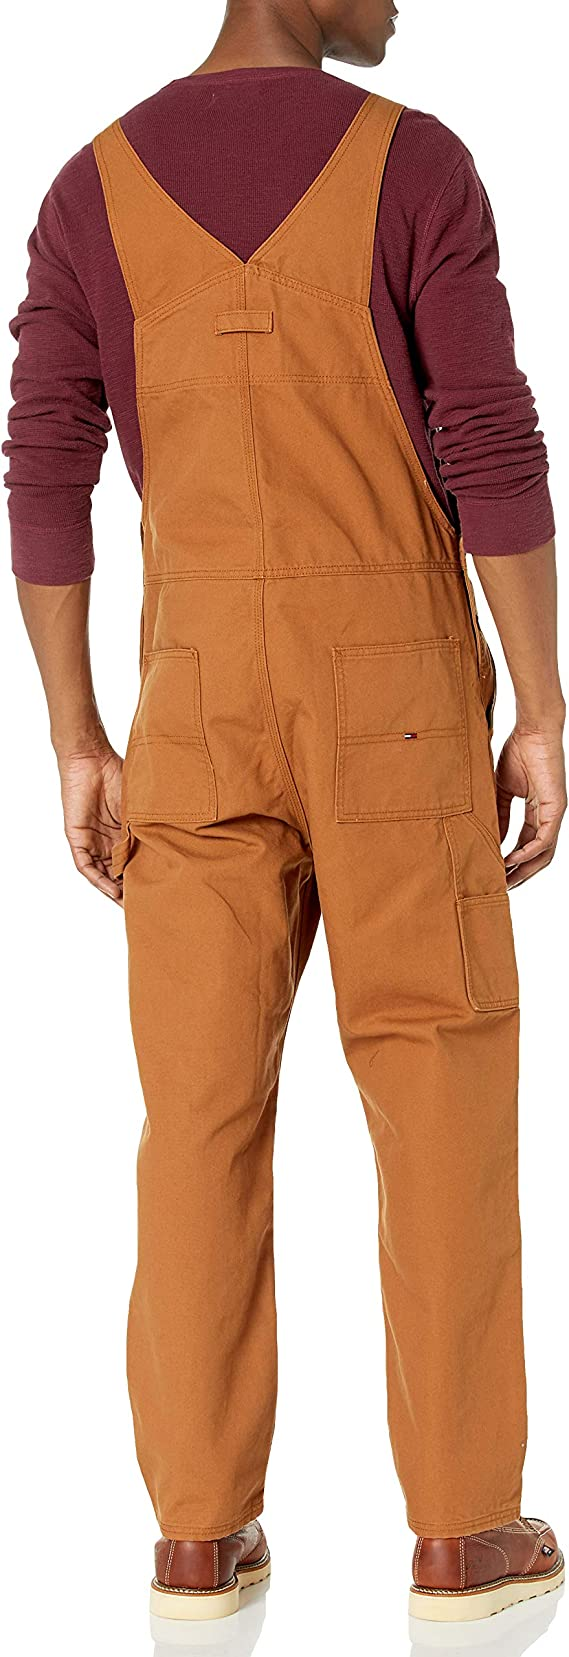 Tommy Hilfiger Mens Tommy Jeans Mens Overalls Casual Pants